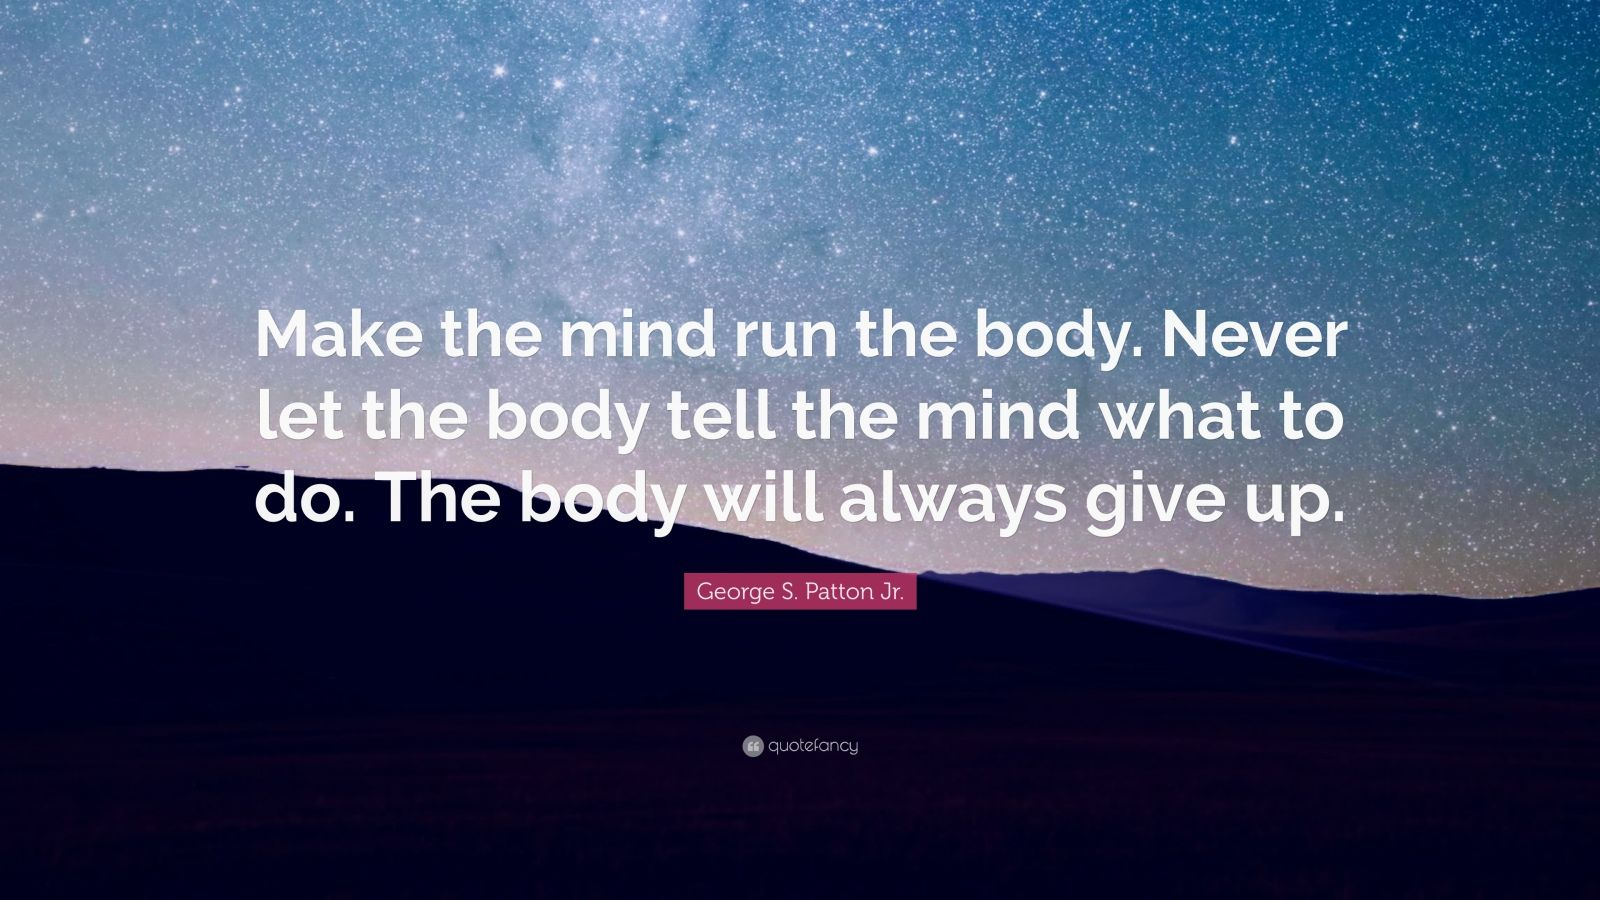 """George S. Patton Jr. Quote: """"Make the mind run the body. Never let the body tell the mind what to do. The body will always give up."""""""